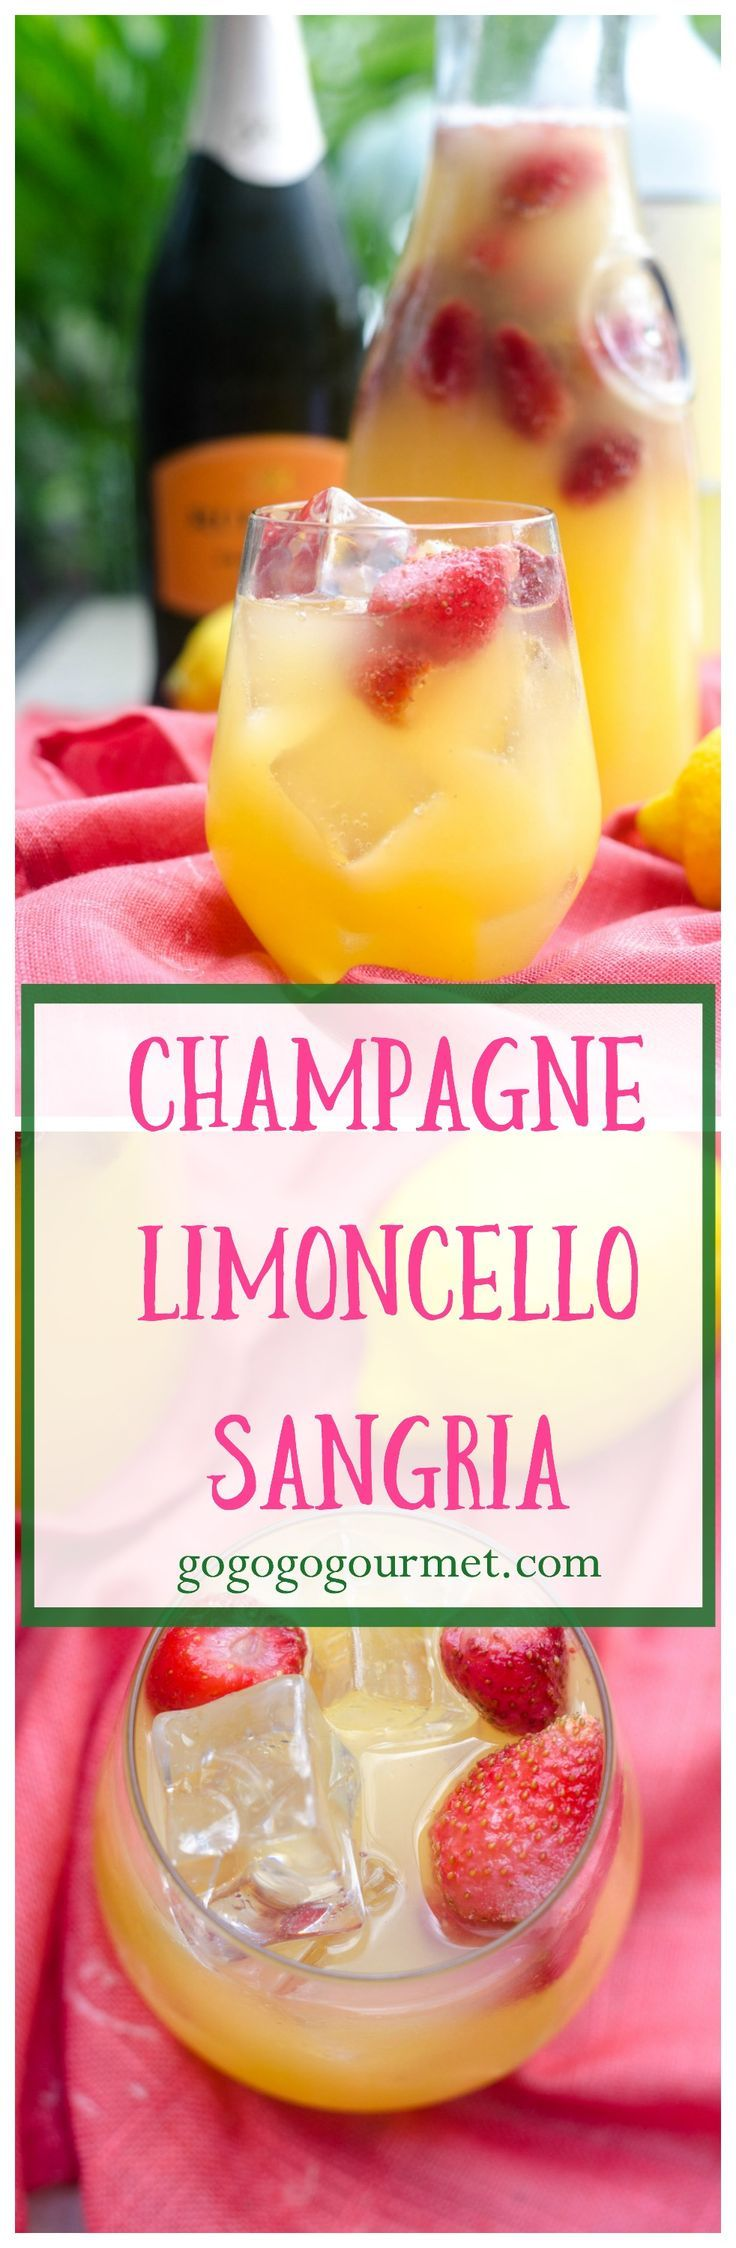 Zo deze zomer limoncello Sangria moet gemaakt worden deze zomer! ☀️ We're running out of summer, so make this fabulous summer refresher- Champagne Limoncello Sangria! | Go Go Go Gourmet @gogogogourmet